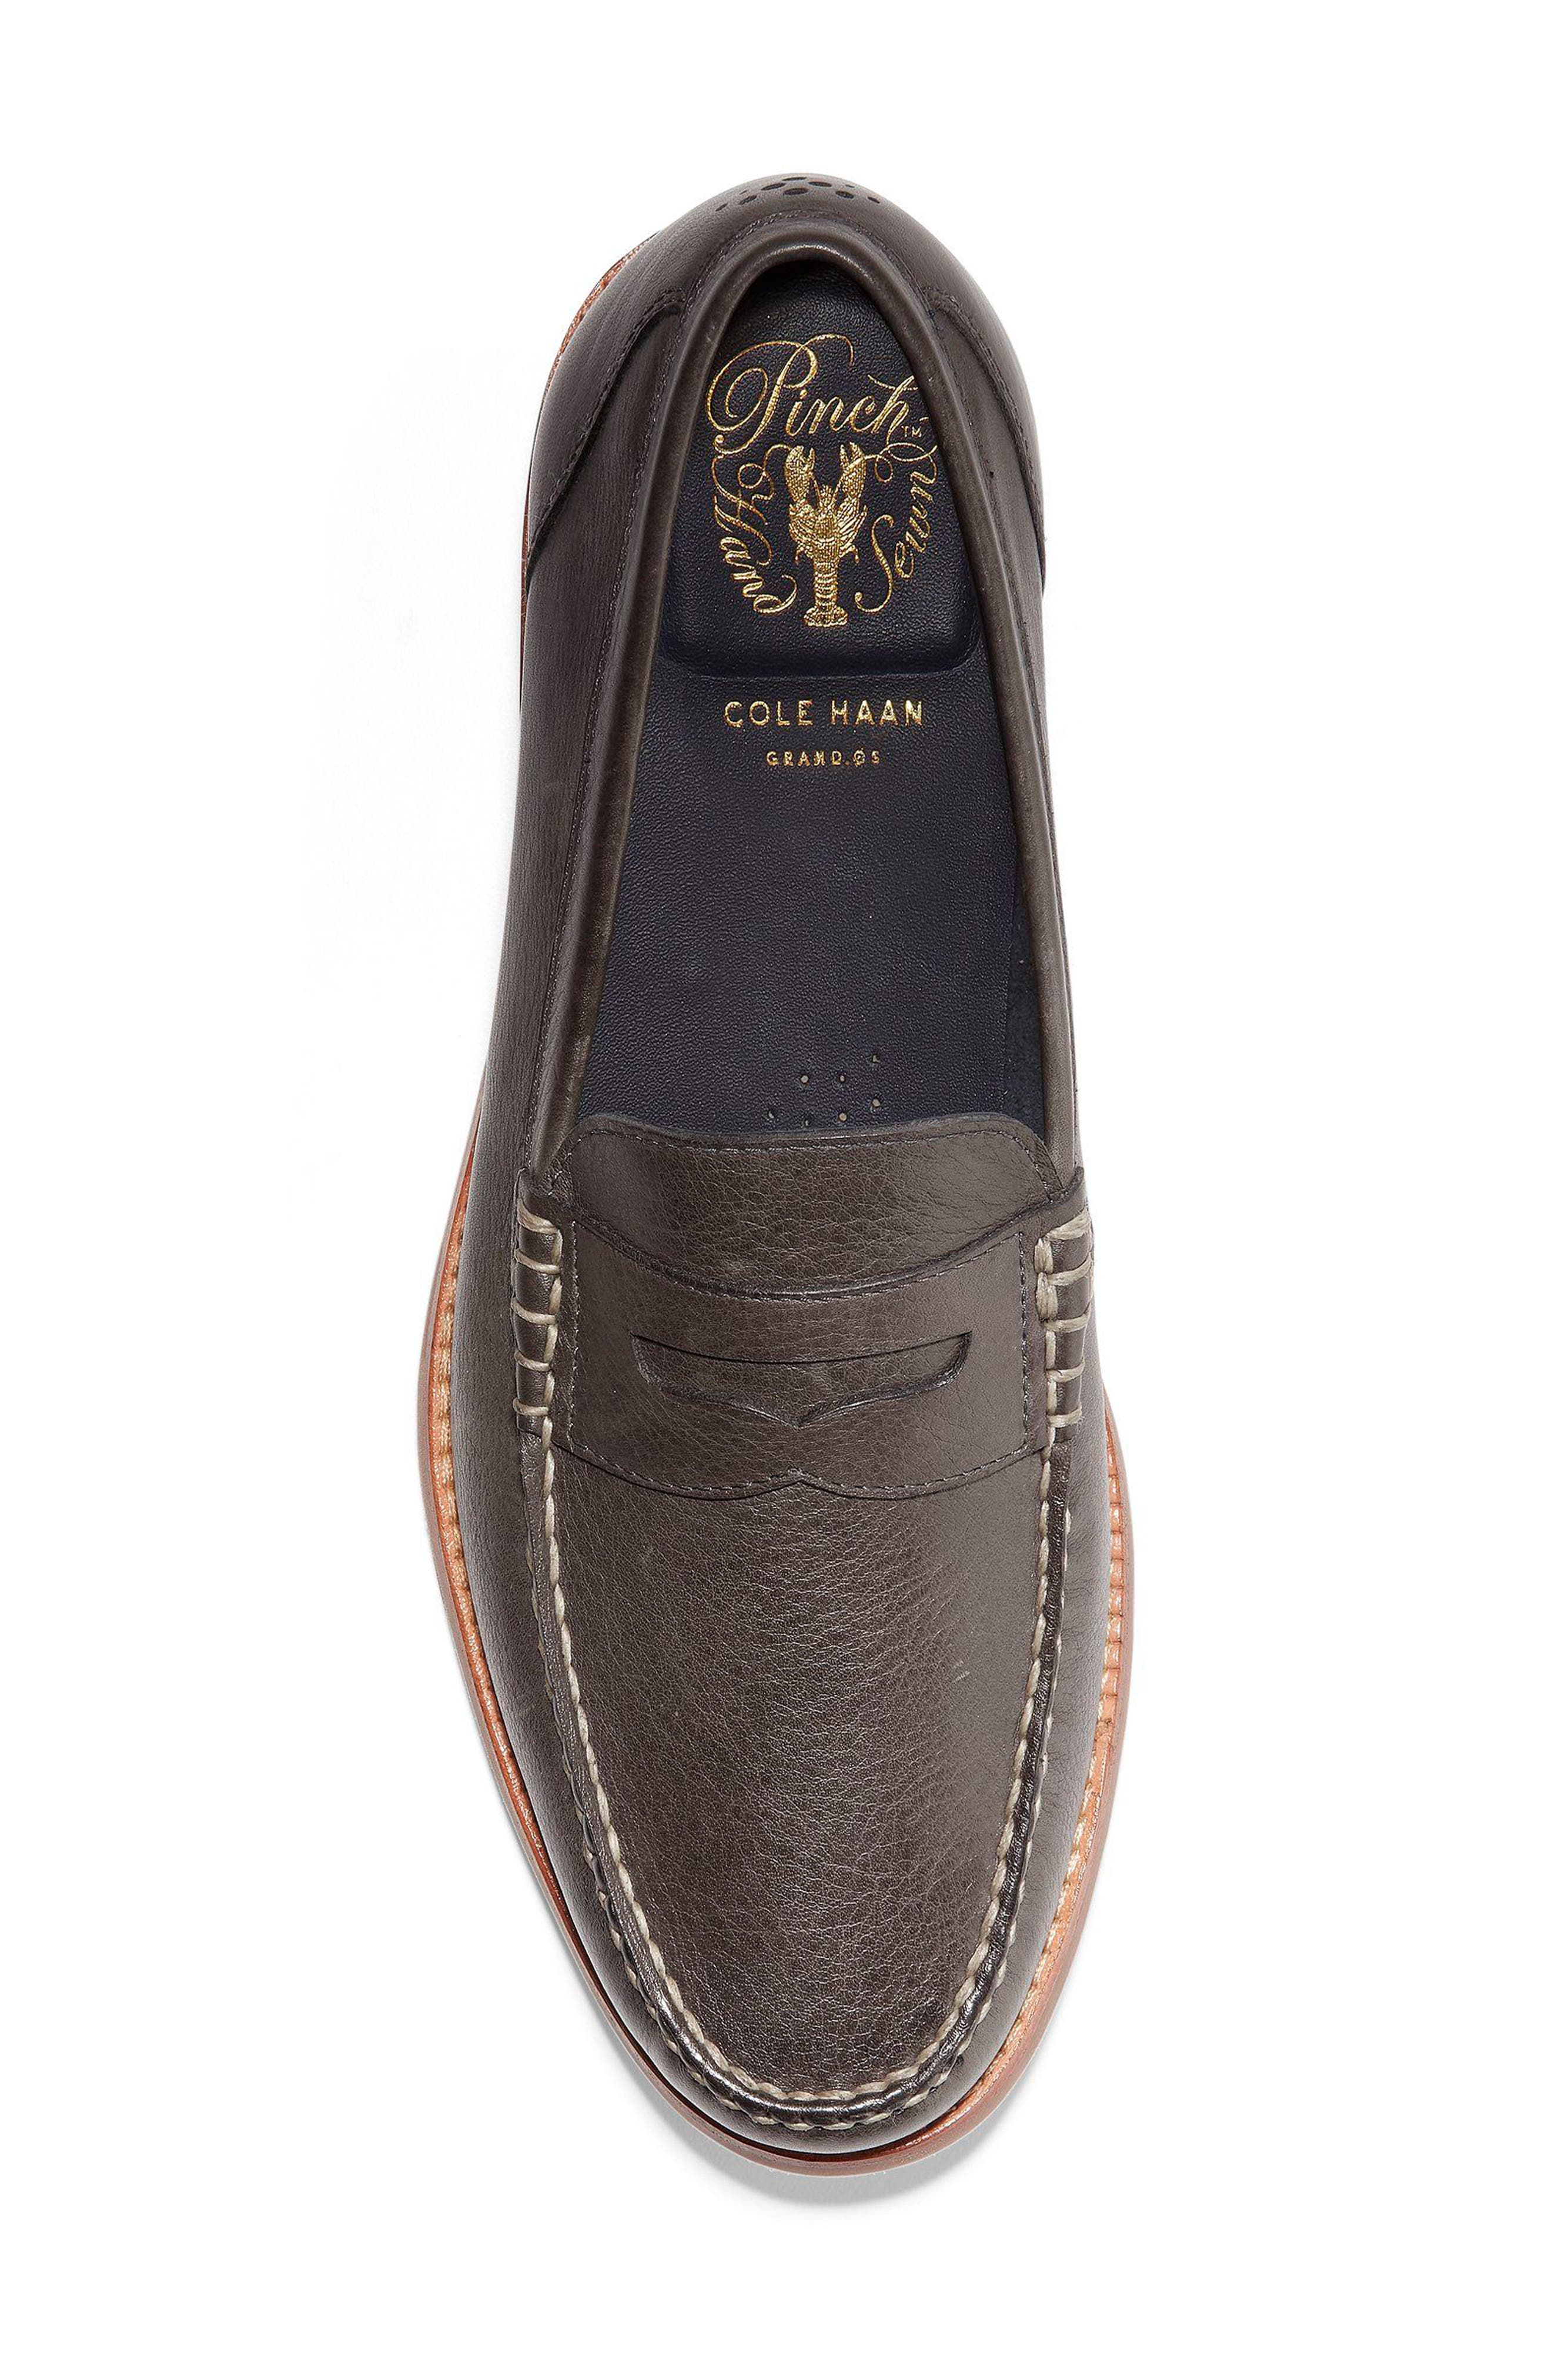 'Pinch Grand' Penny Loafer,                             Alternate thumbnail 5, color,                             021